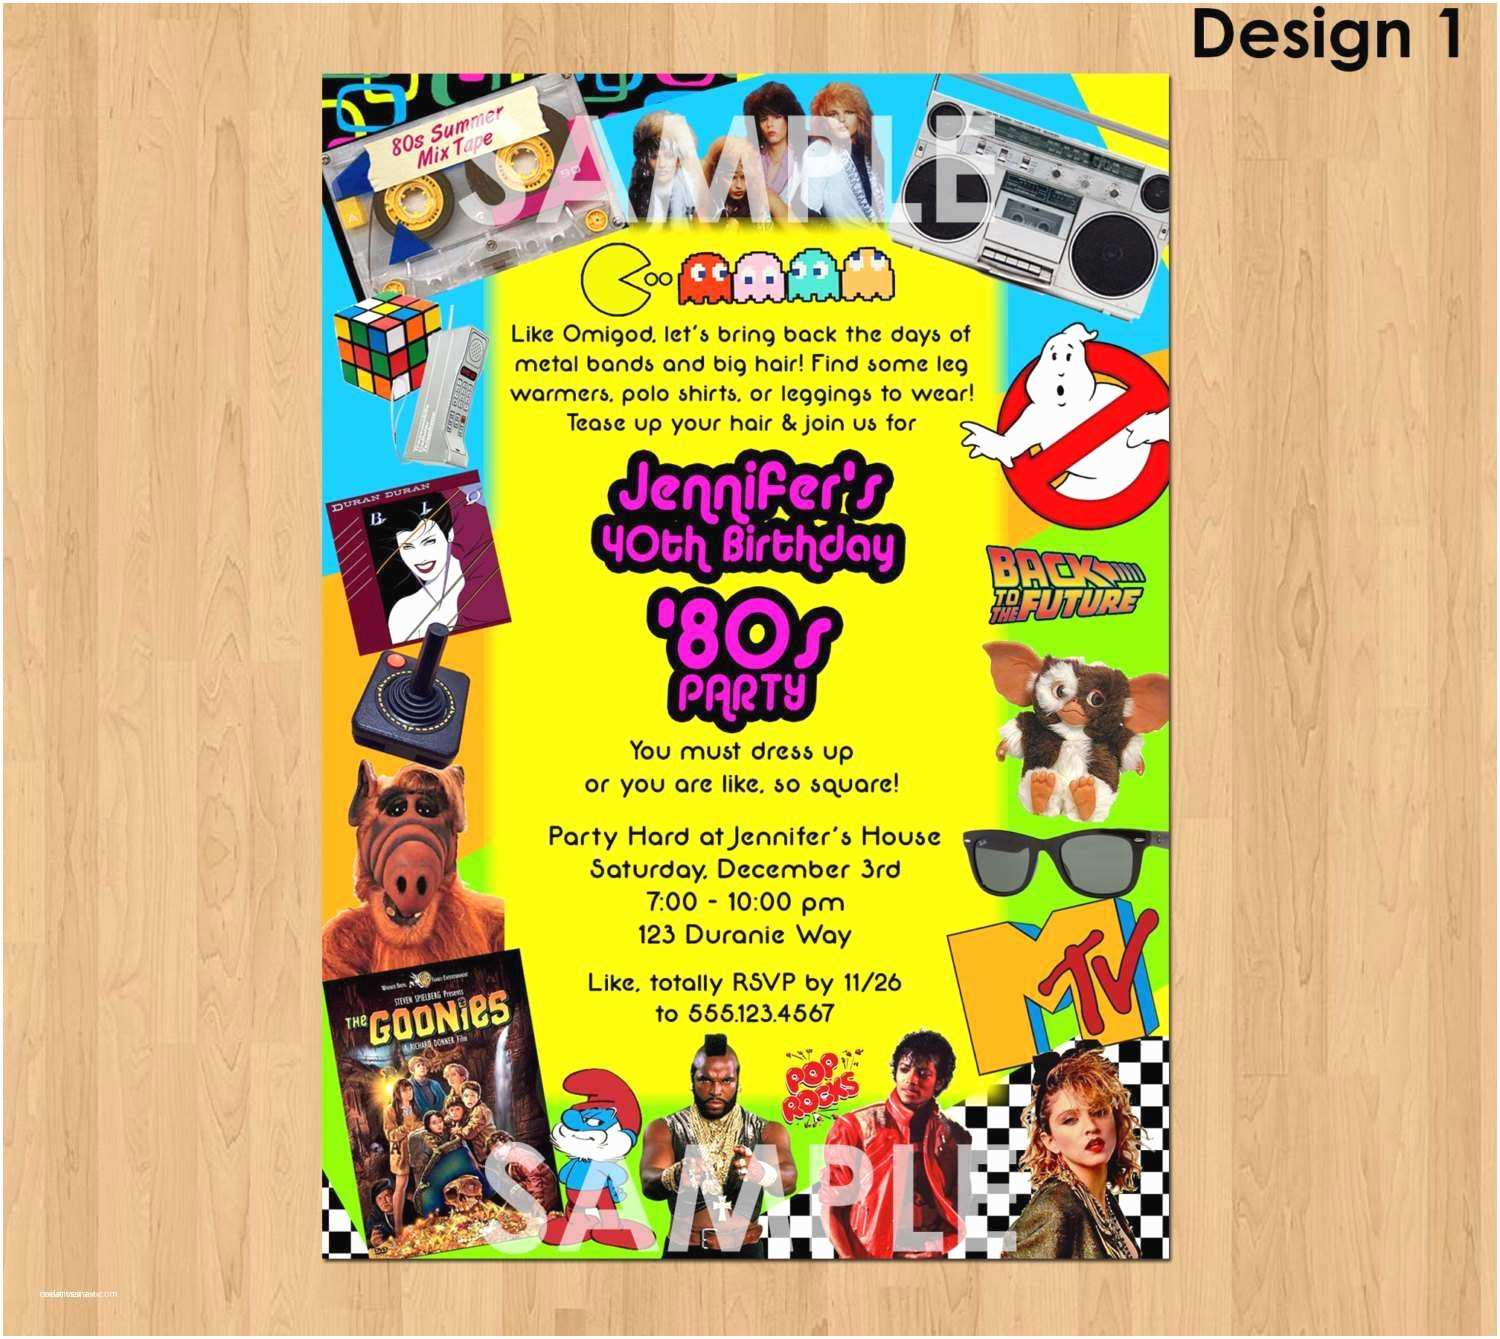 80s Party Invitations 40th Birthday Party Invitations for Him Elegant 80s Party